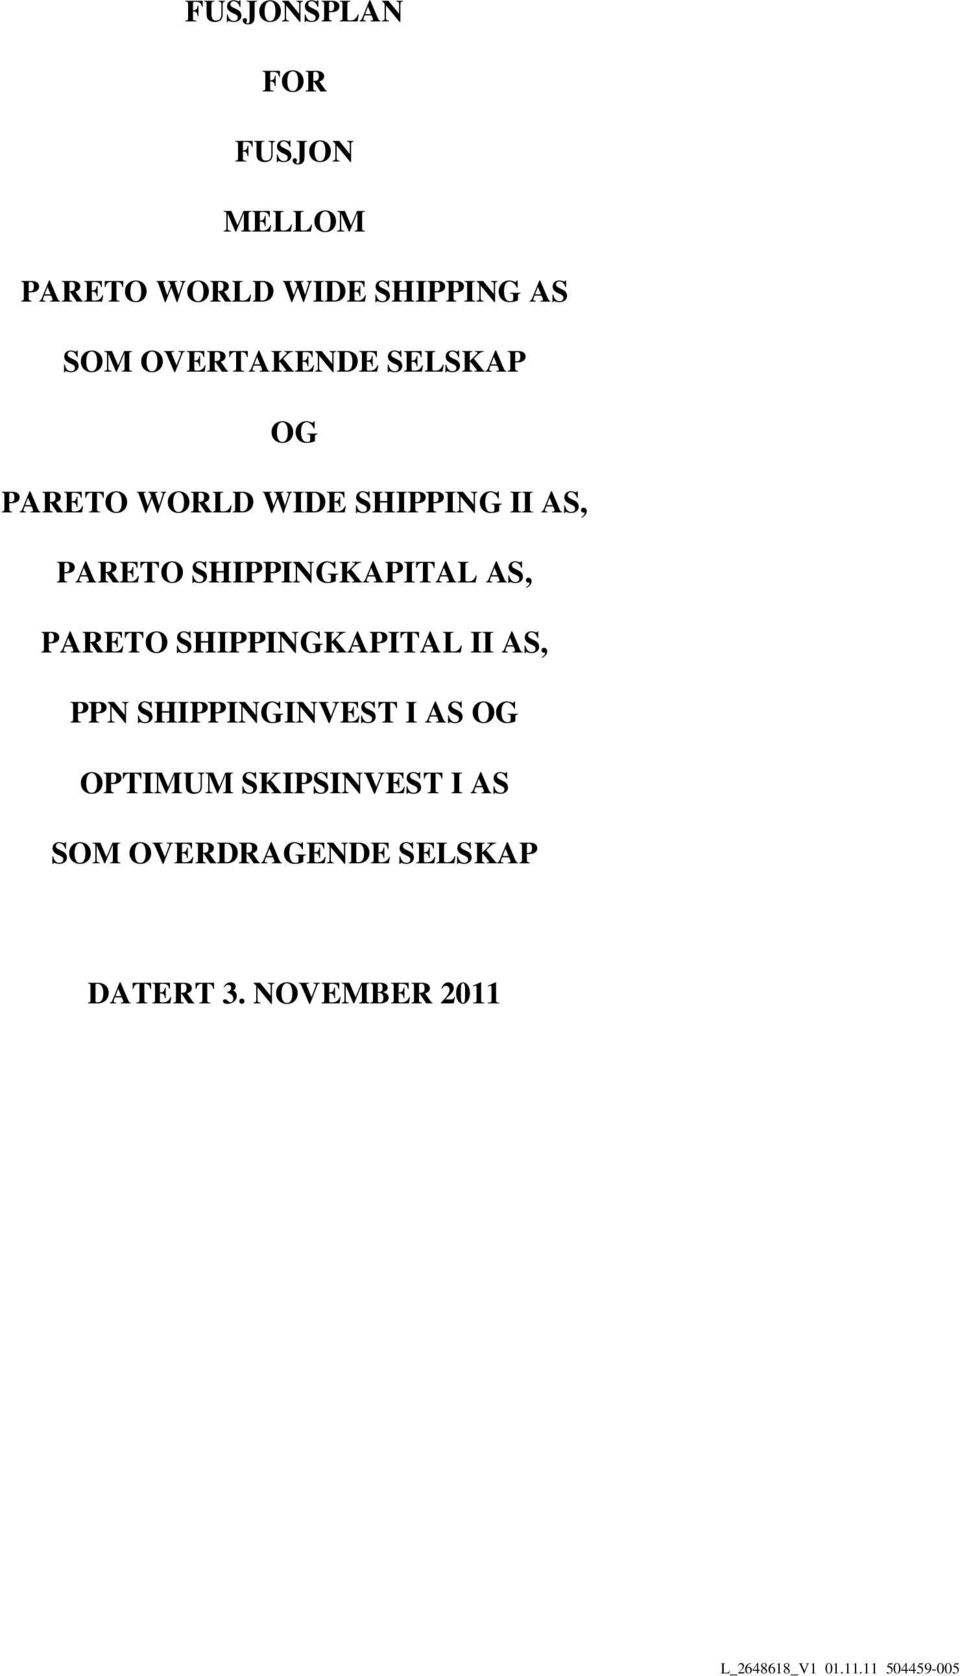 PARETO SHIPPINGKAPITAL II AS, PPN SHIPPINGINVEST I AS OG OPTIMUM SKIPSINVEST